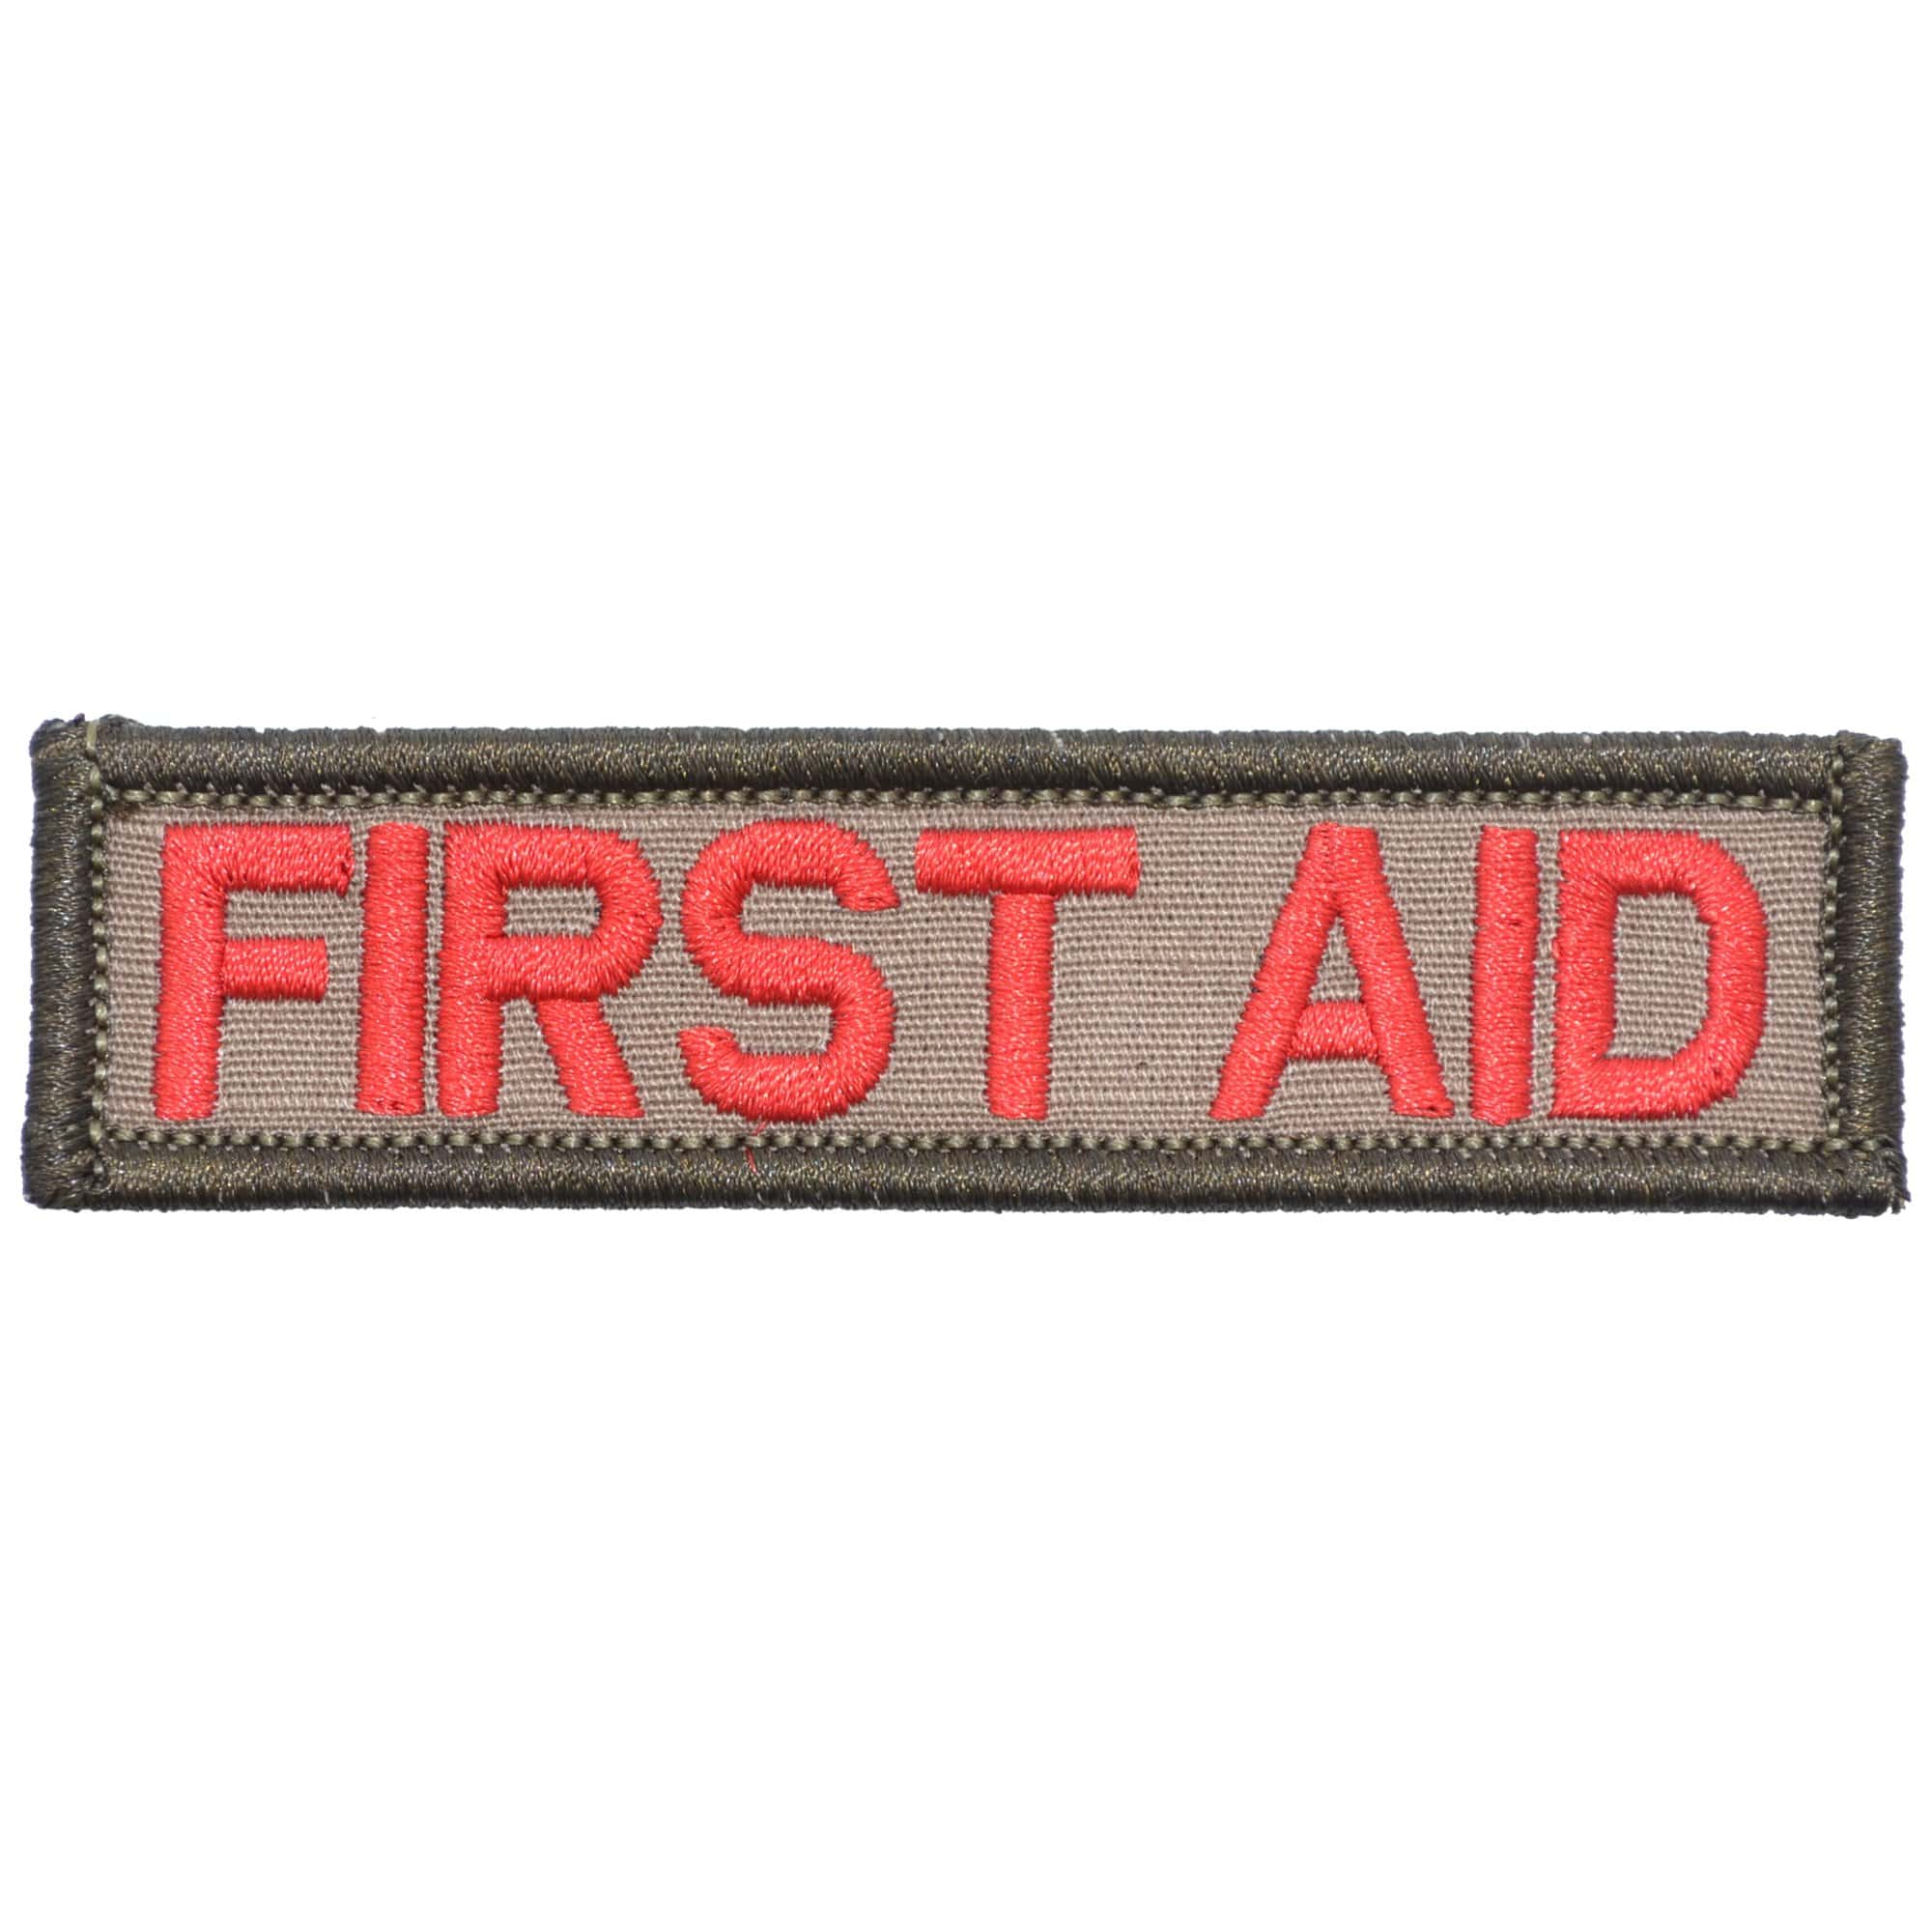 Tactical Gear Junkie Patches Desert Sand First Aid - 1x3.75 Patch